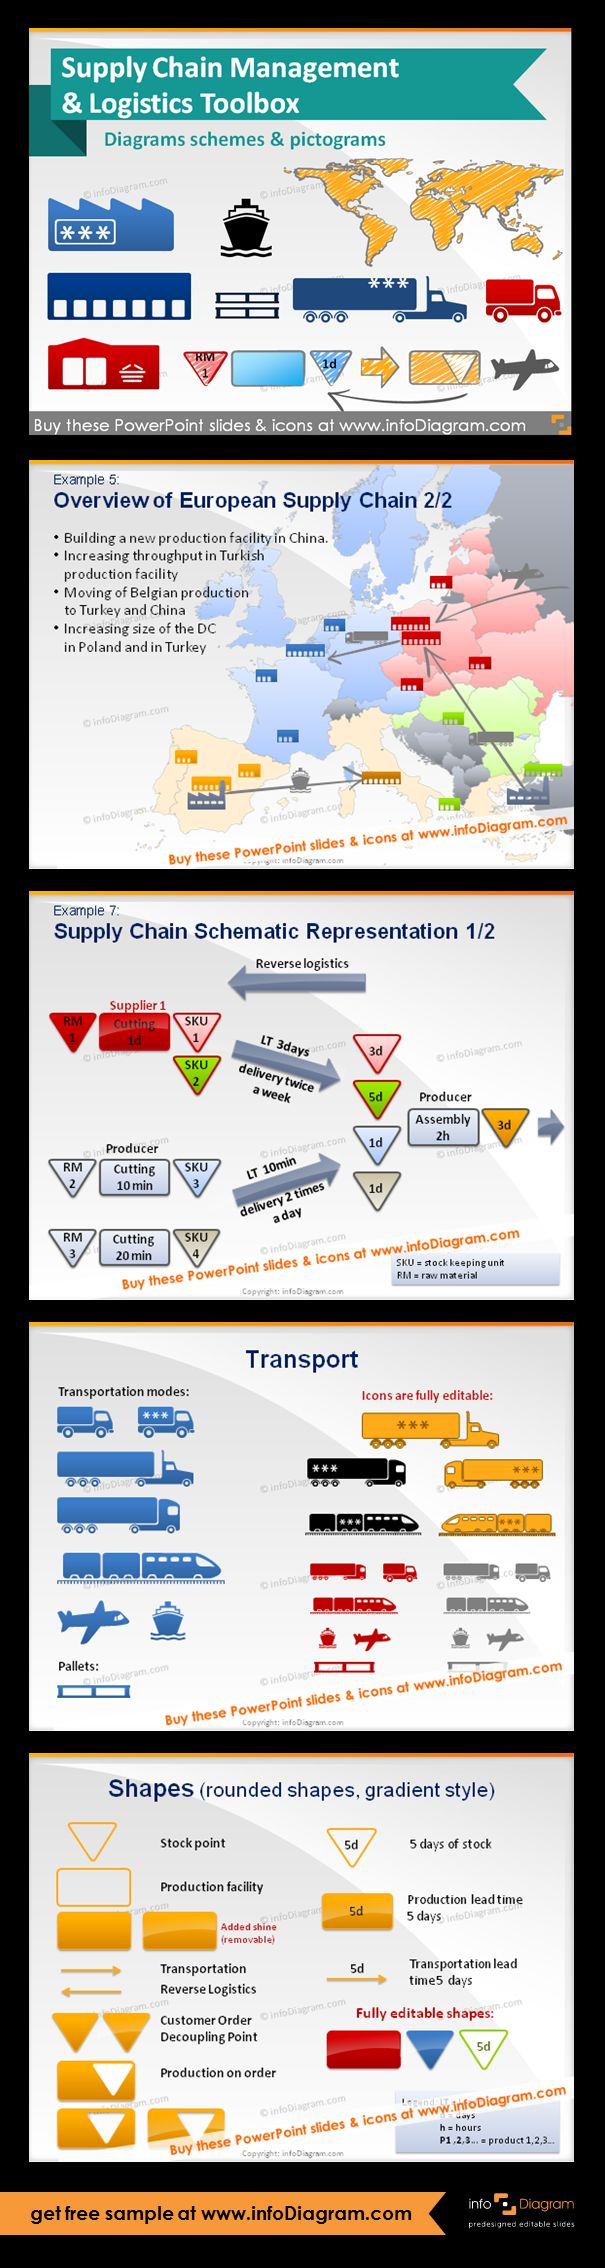 Supply Chain and Logistics schema diagrams & pictogram icons - editable graphical elements for PowerPoint. Fully adaptable vector shapes (color, filling, size). Overview of a European Supply Chain. Supply Chain Schematic Representation with a supplier, two producers, reduction of WIP ( reverse logistics, SKU - stock keeping unit, RM - raw material, WIP - work in process). Transport icons, gradient shapes.